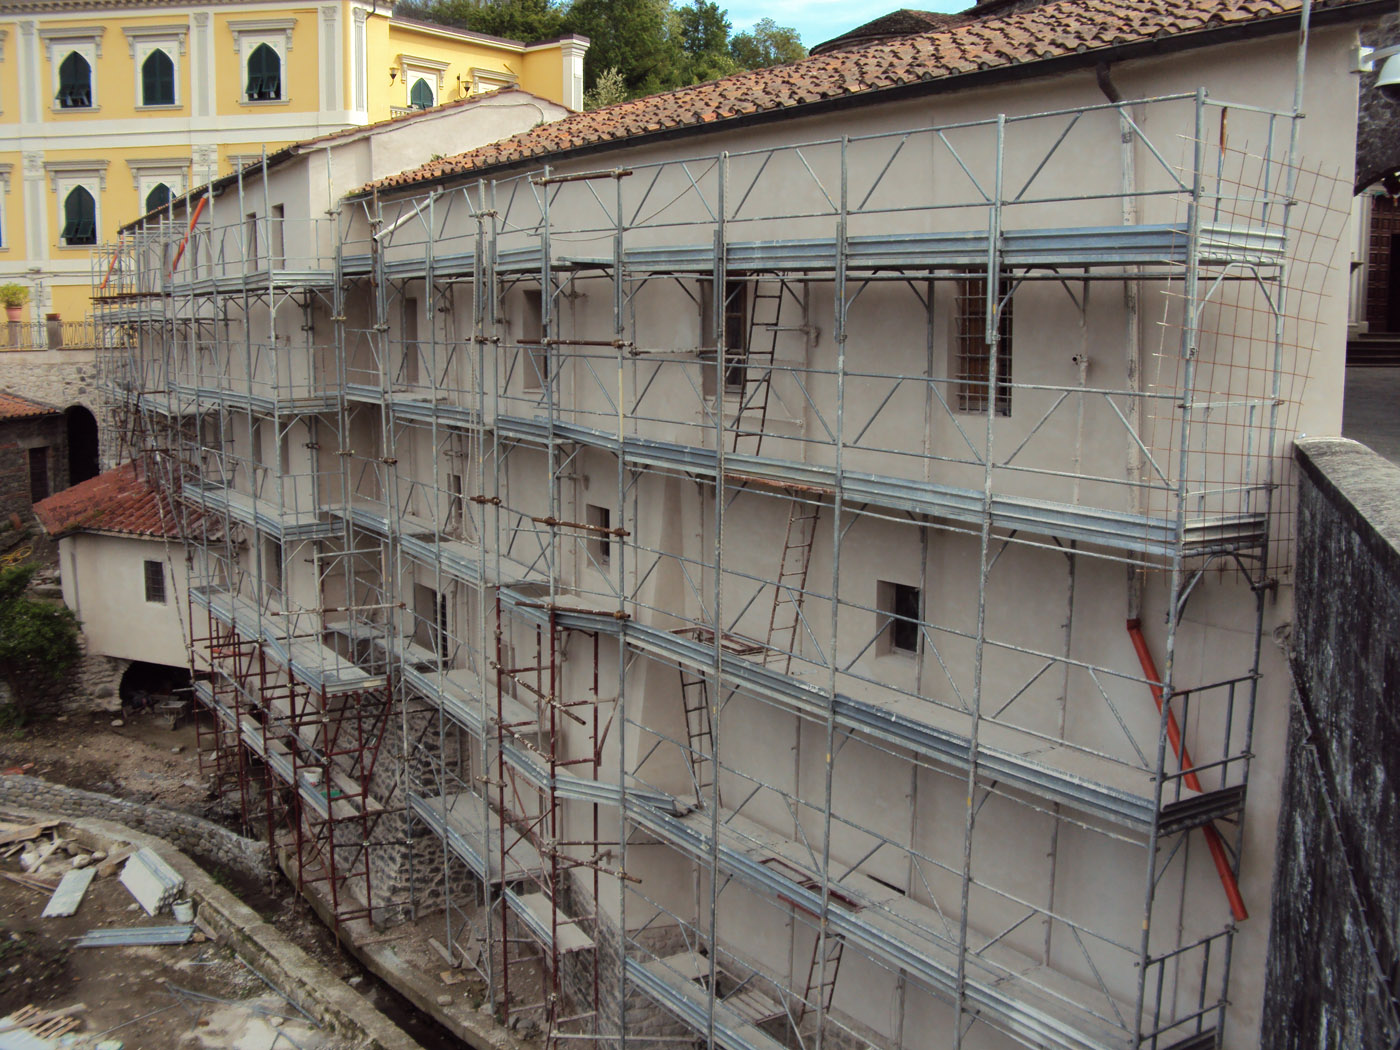 Renovation of the Villafranca building with the FerriTECHNIC structural reinforcement and restoration system